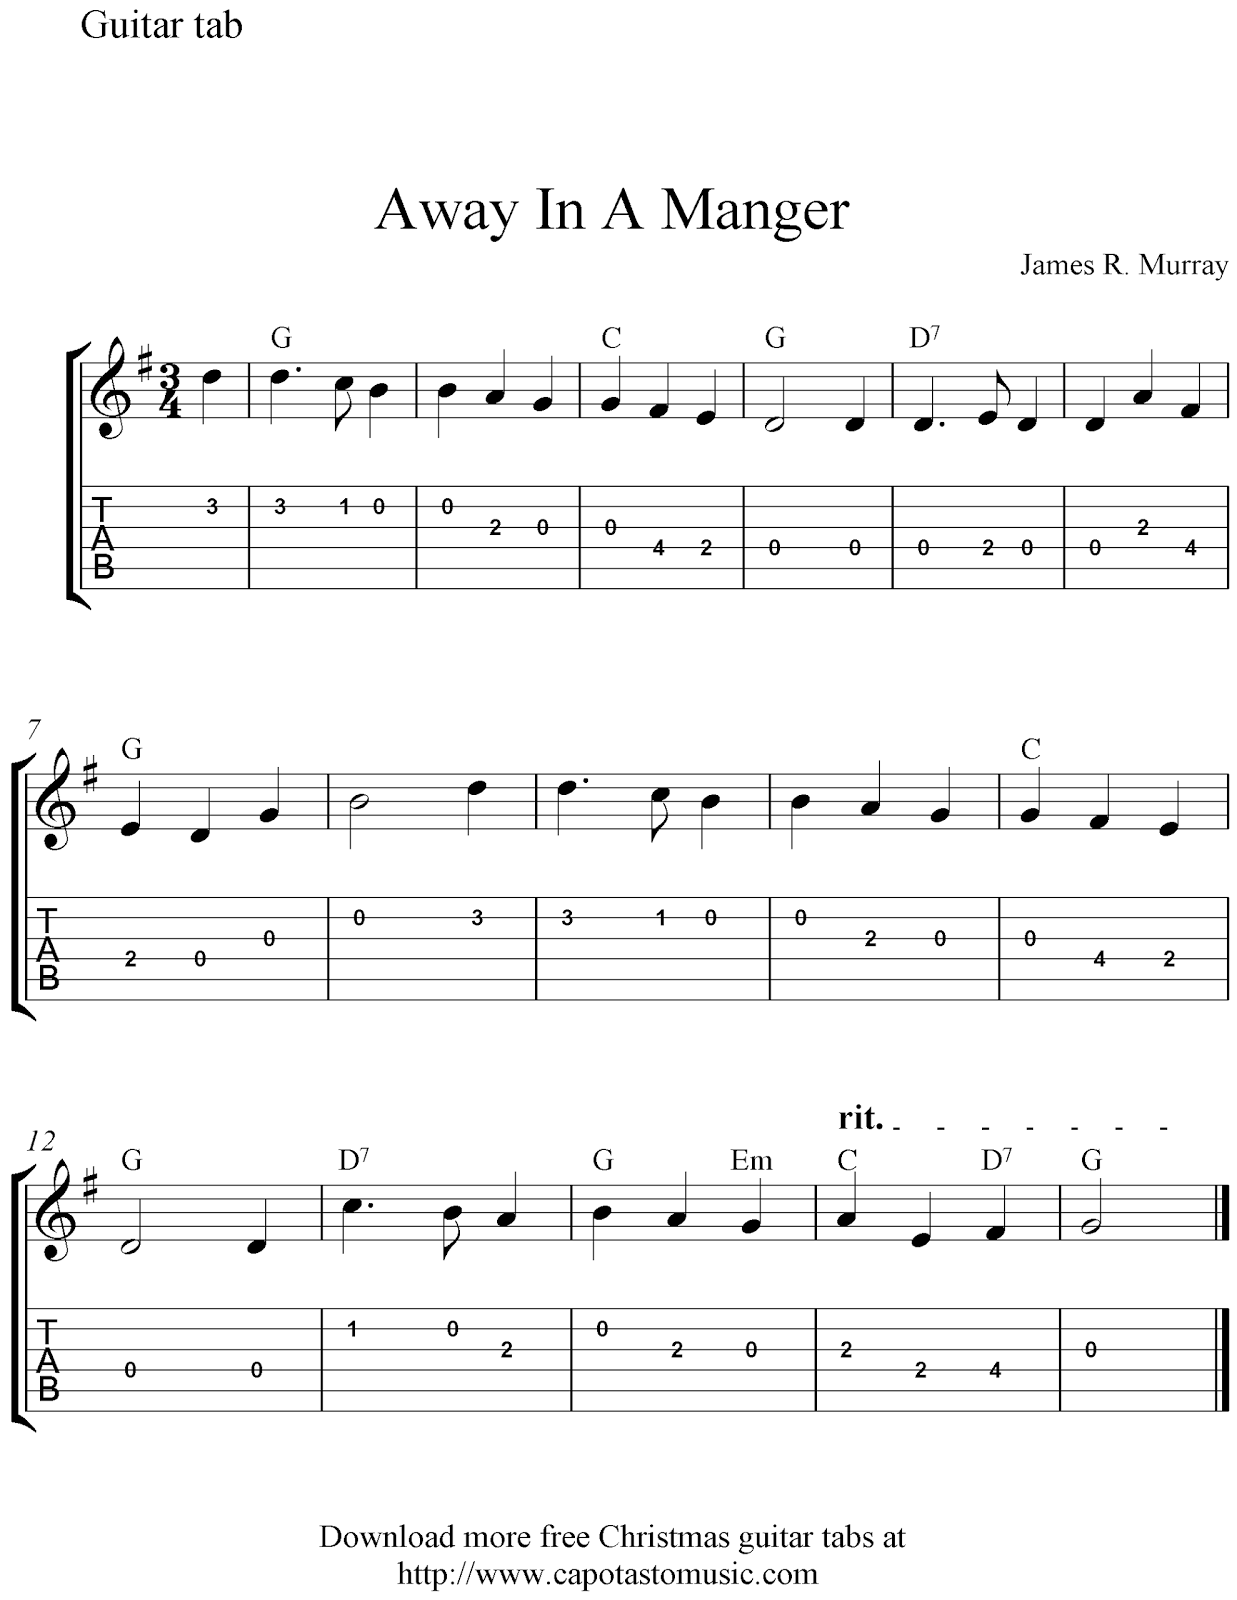 Free easy Christmas guitar tablature sheet music, Away In A Manger